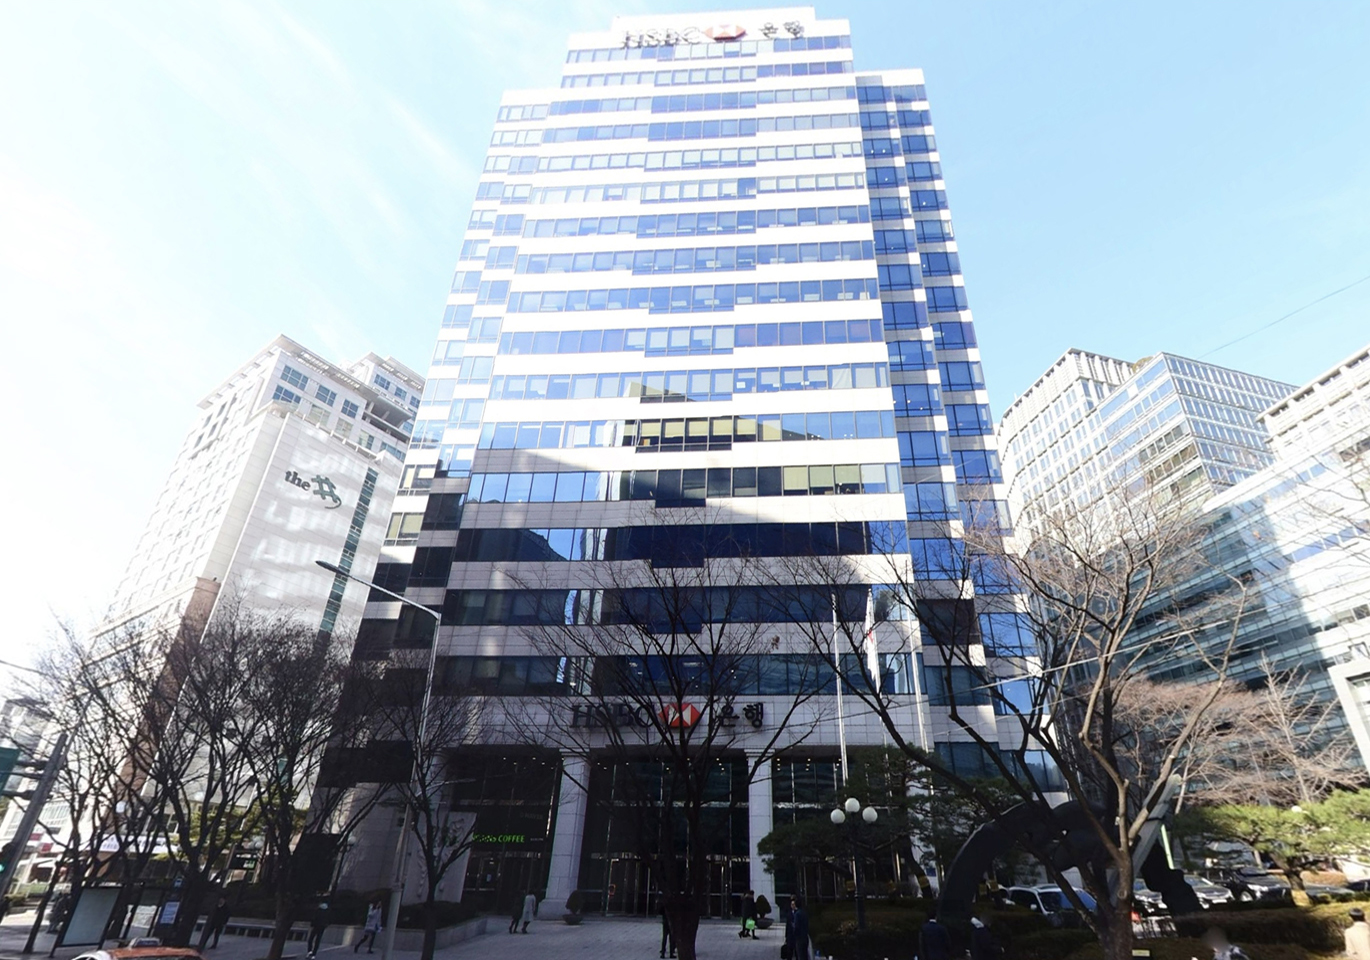 Prain Global acquired the investment equity in the HSBC building from a foreign investor